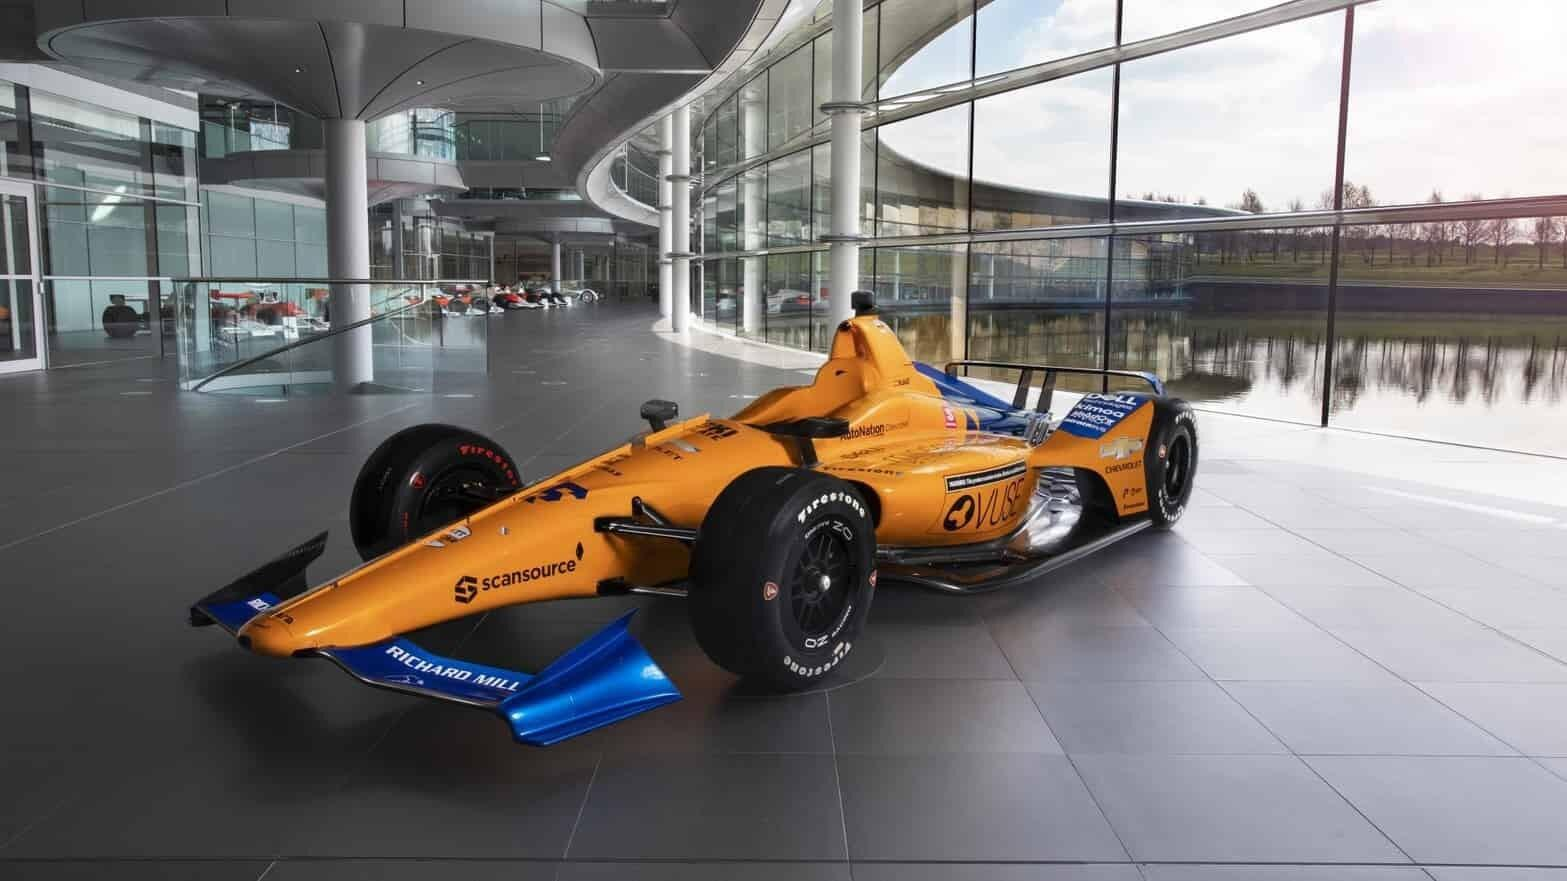 Fernando Alonso has failed to qualify for the 2019 Indy 500...